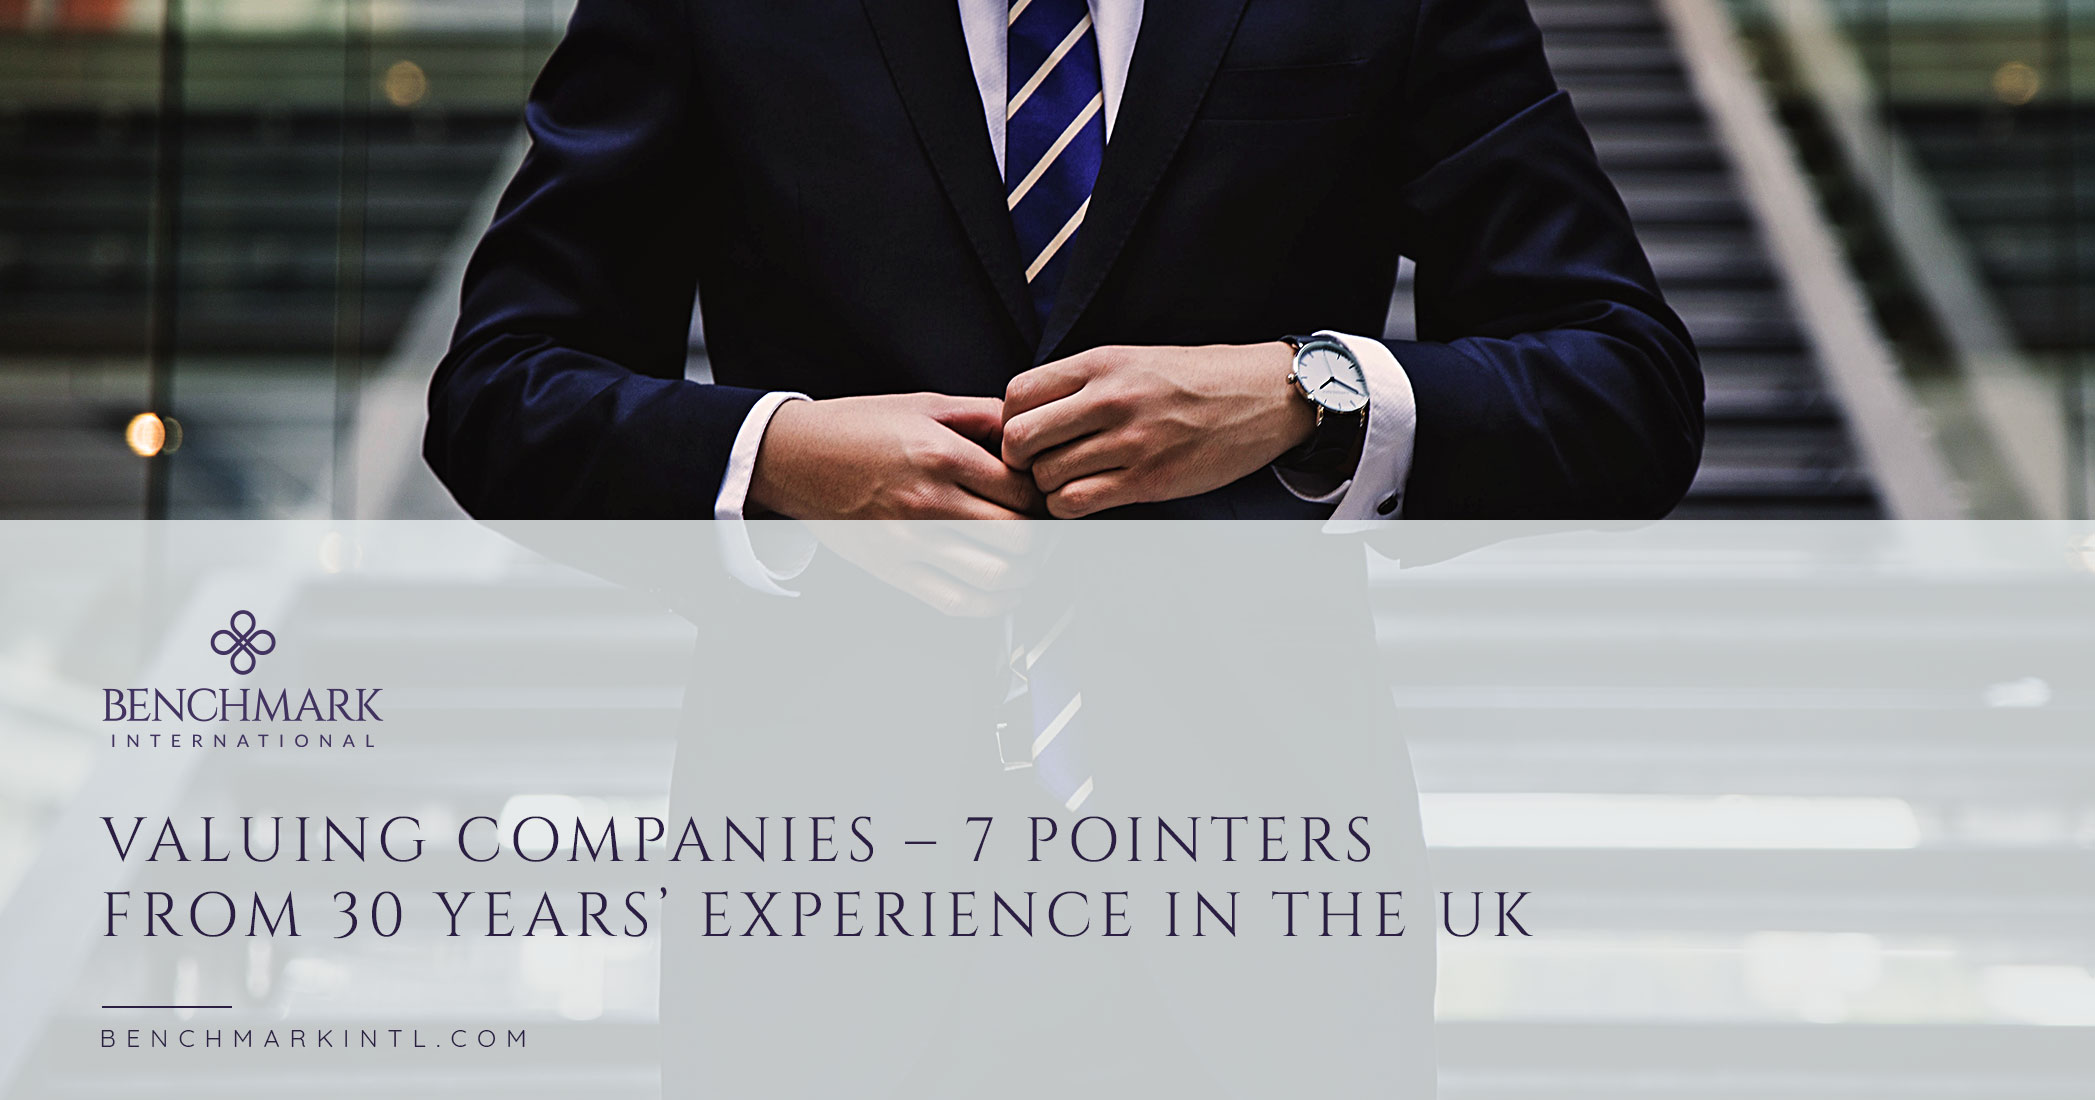 Valuing Companies – 7 Pointers From 30 Years' Experience in the UK